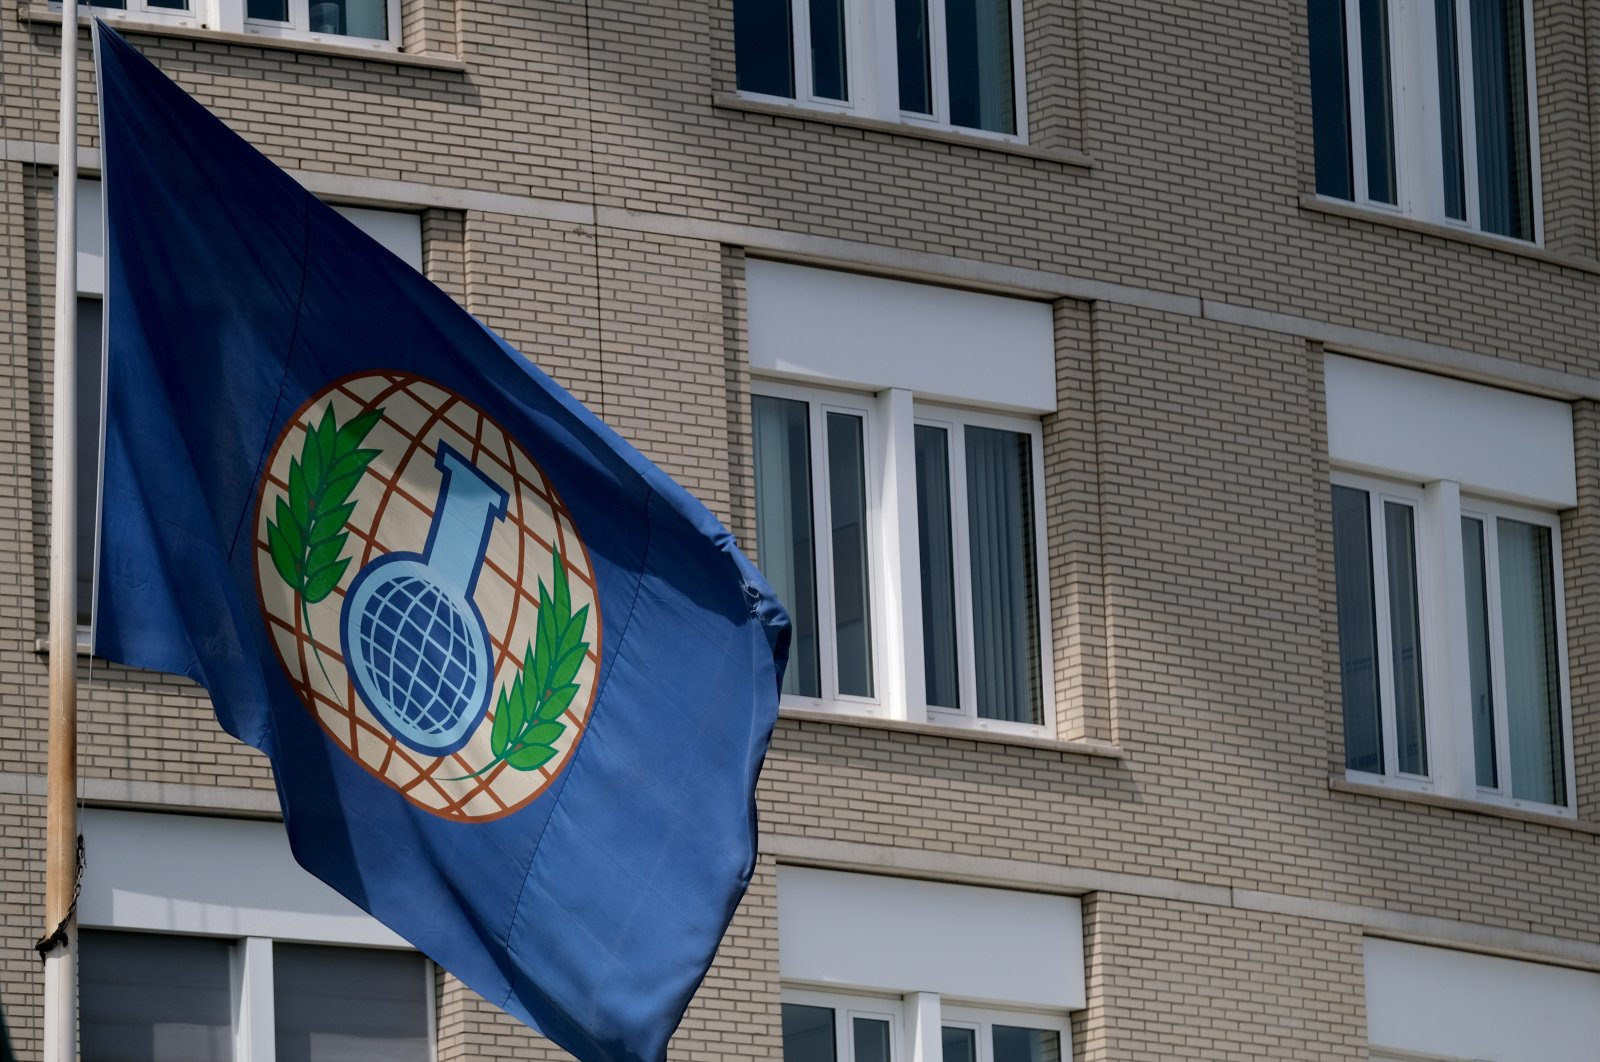 A logo of the Organisation for the Prohibition of Chemical Weapons (OPCW) is seen on a flag fluttering at the entrance of its headquarters building on June 24, 2020 in The Hague, Netherlands. (Getty Images)